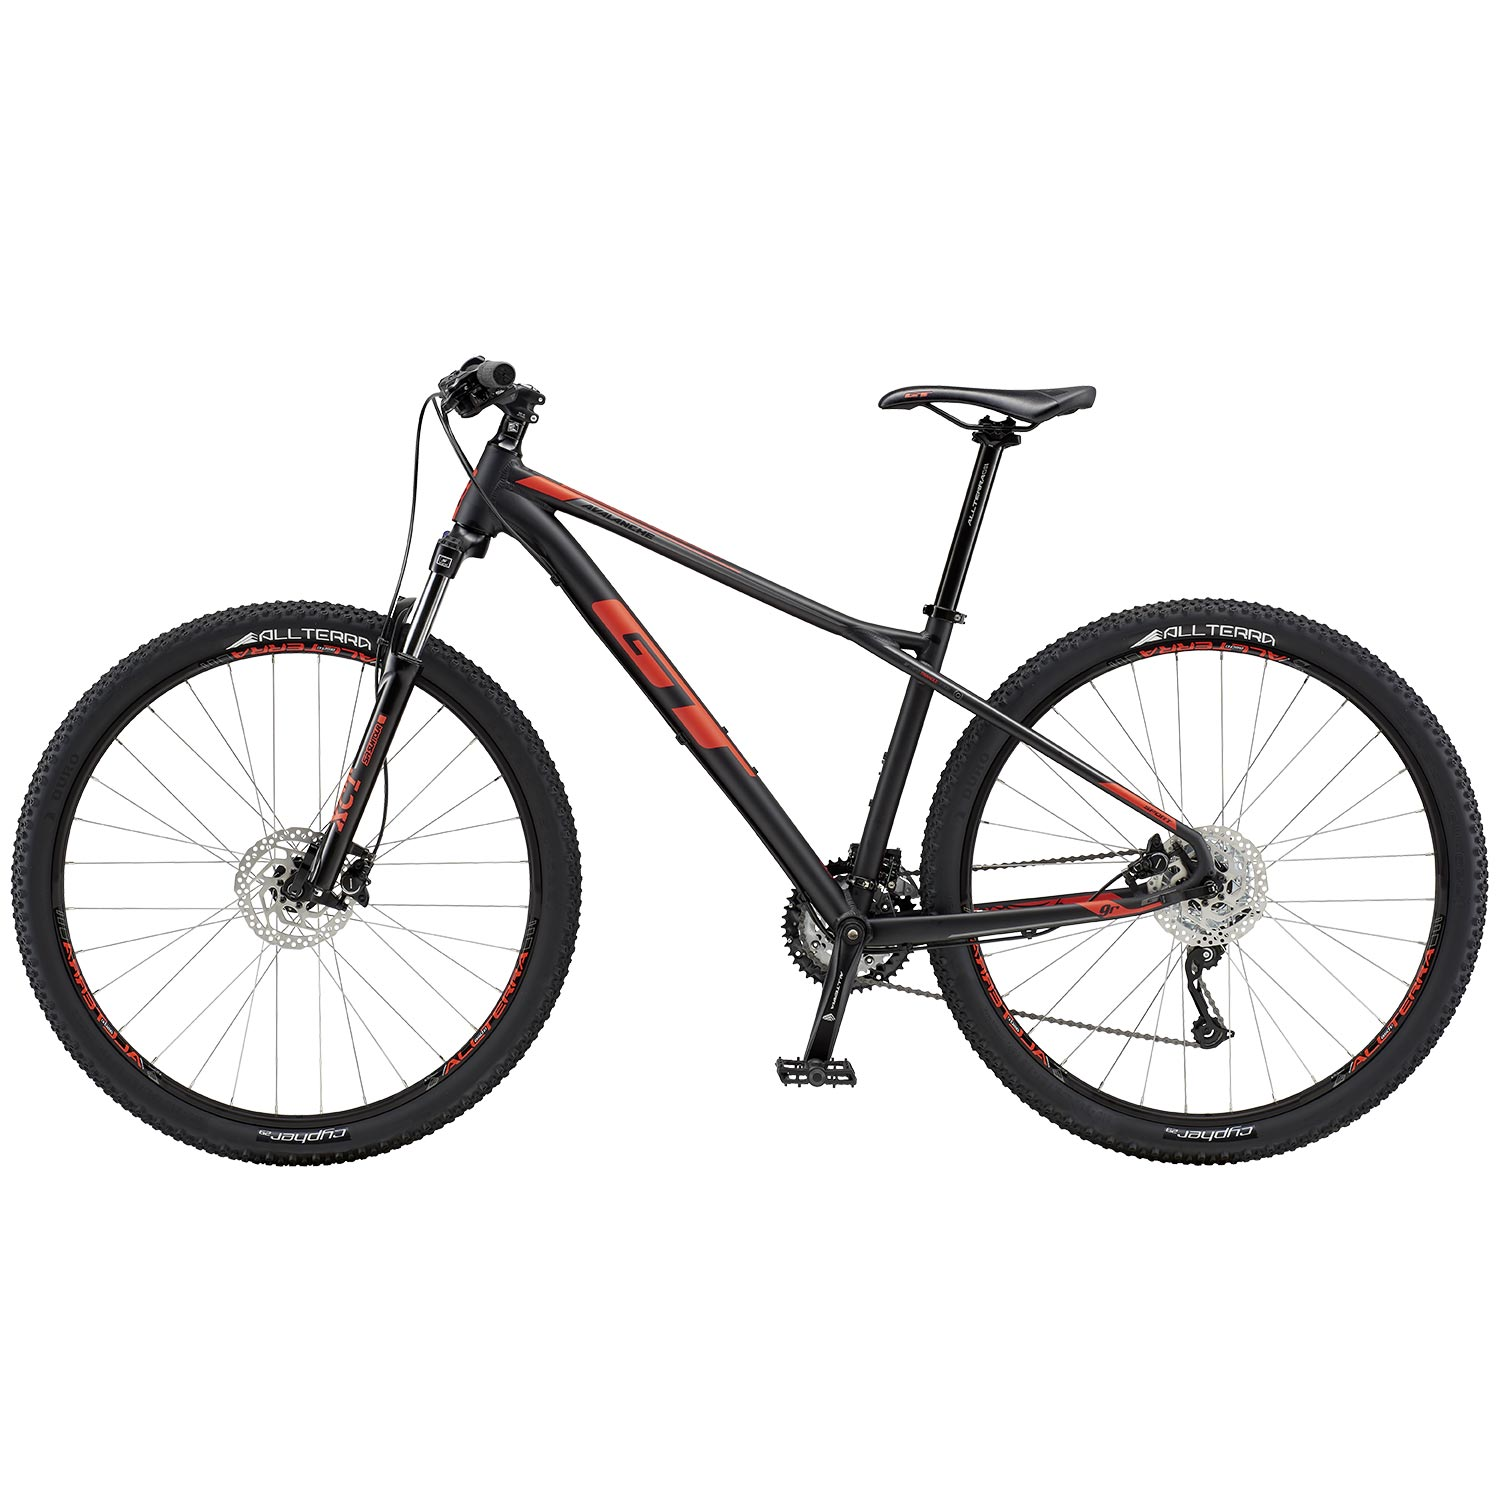 MTB Mountain Bike 29 Inch Hardtail Gt Avalanche Sports Trail All ...